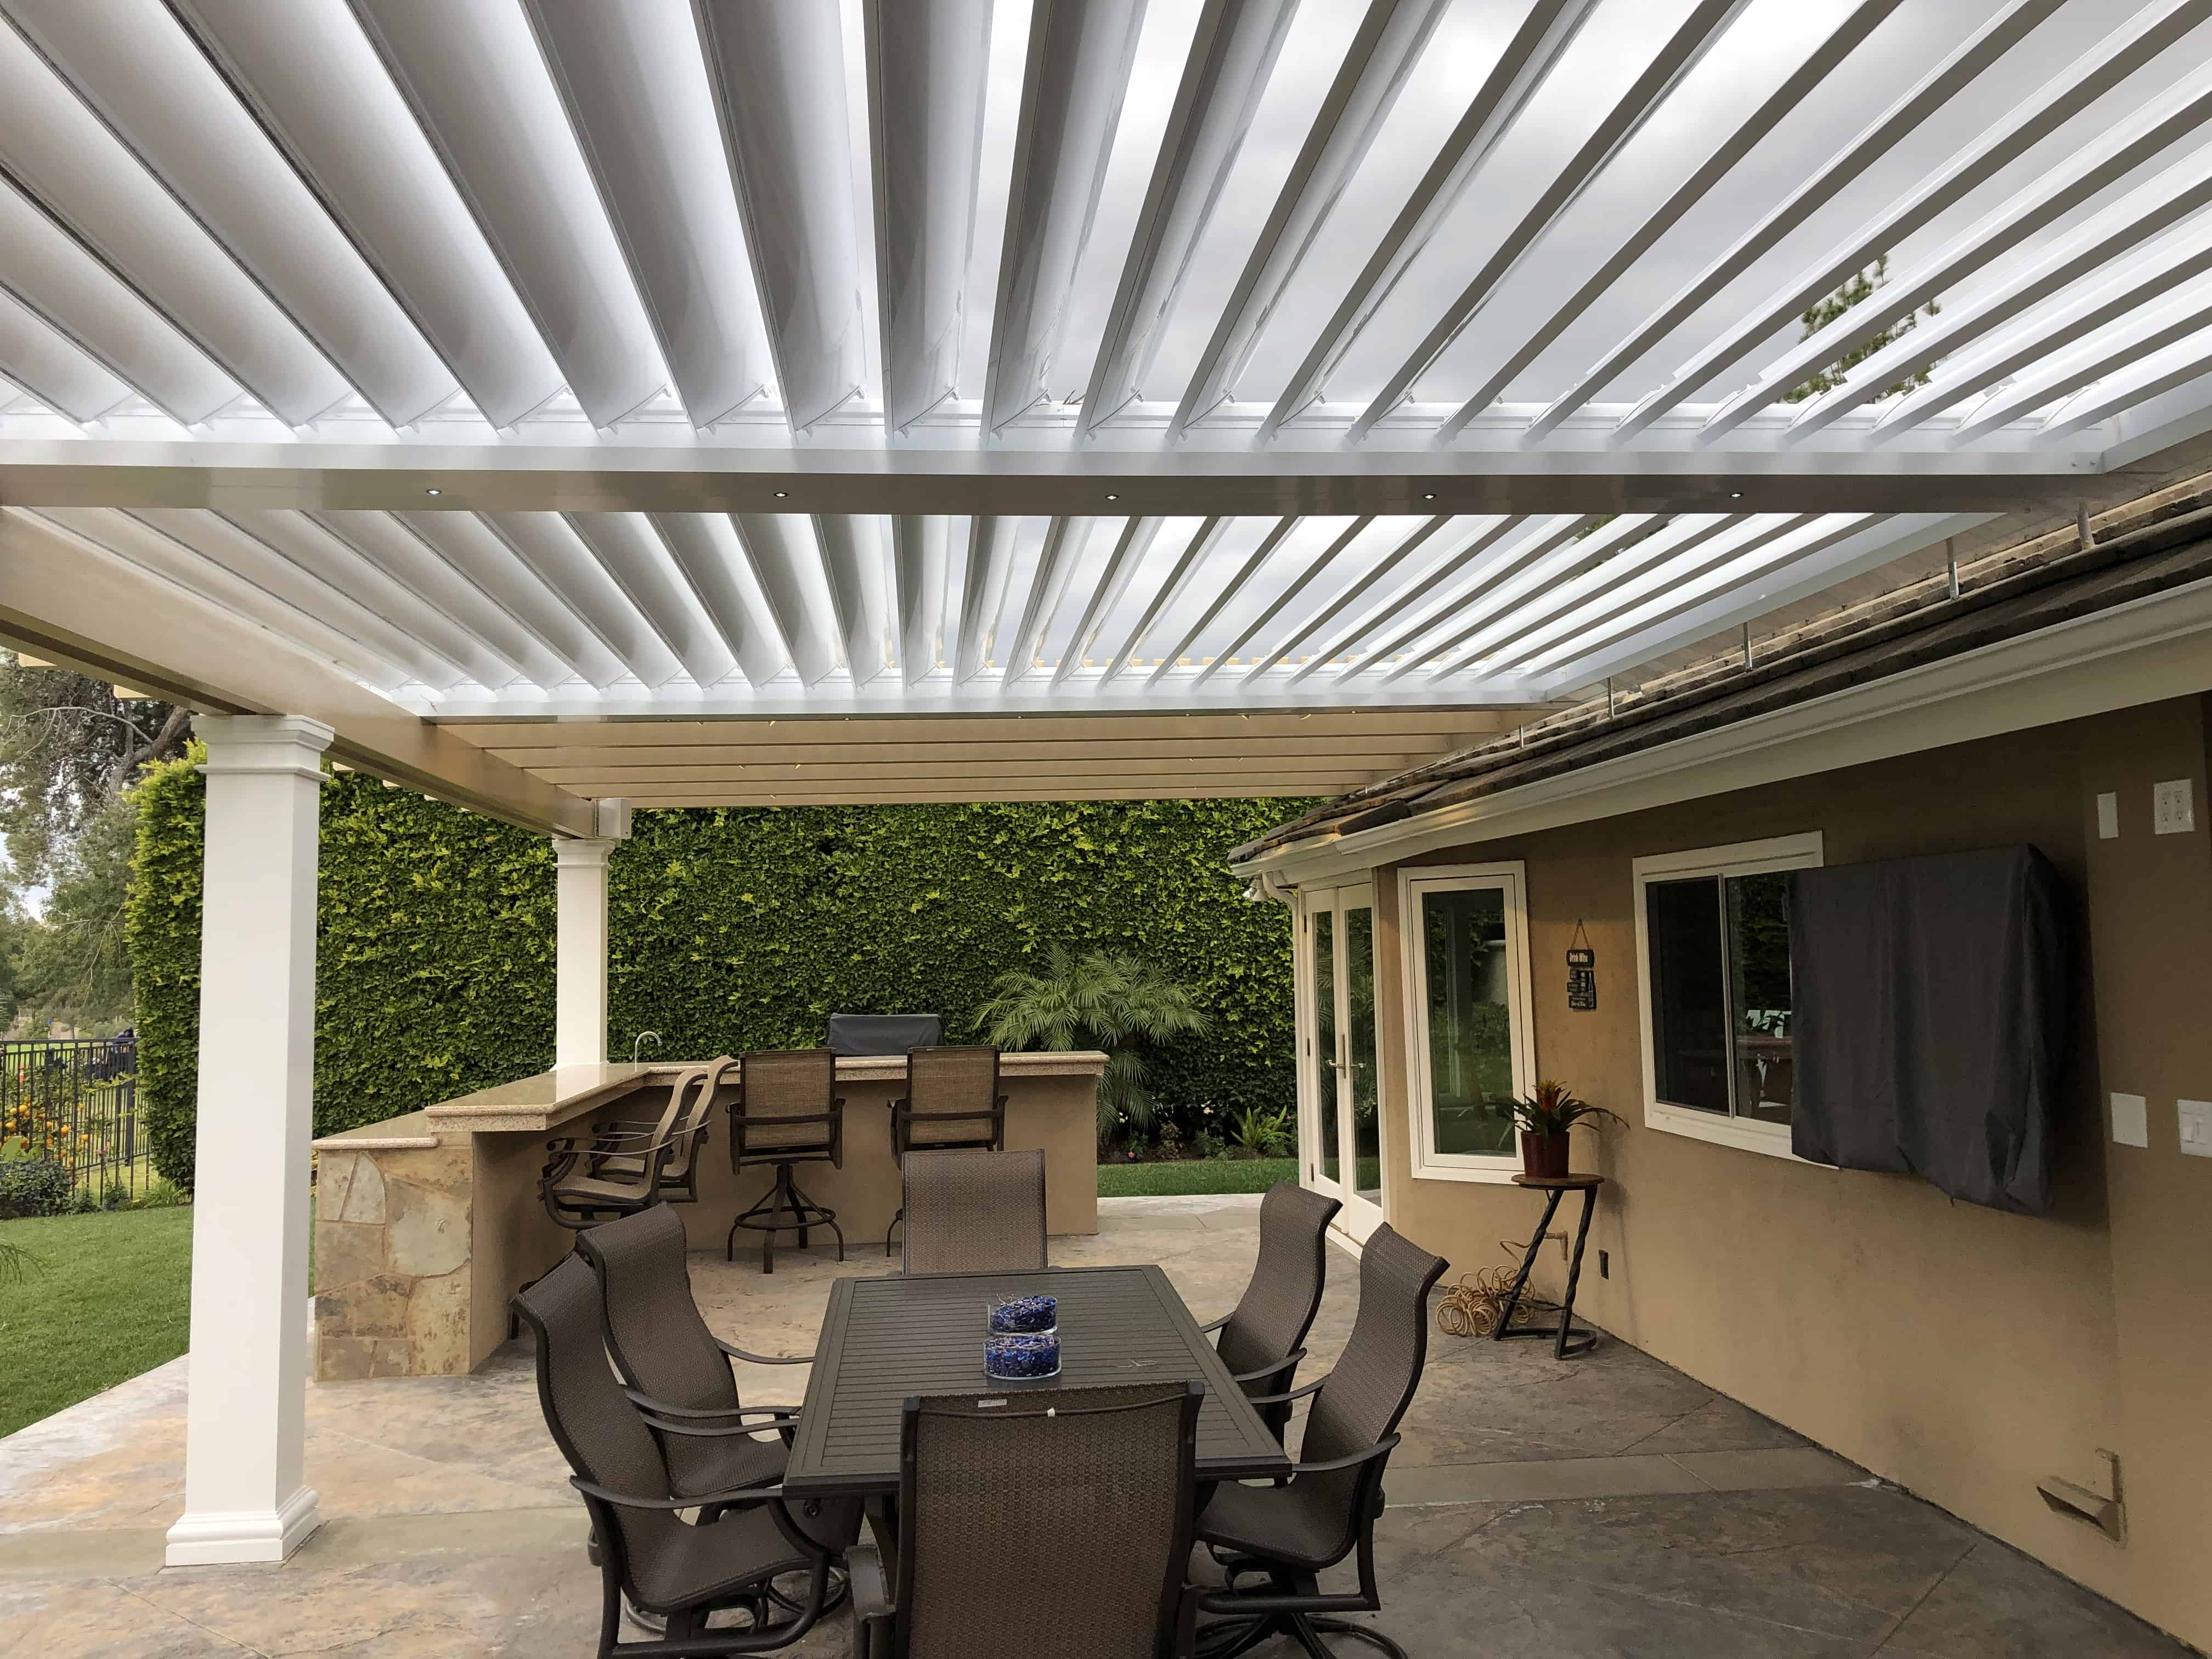 equinox louvered roof system patio